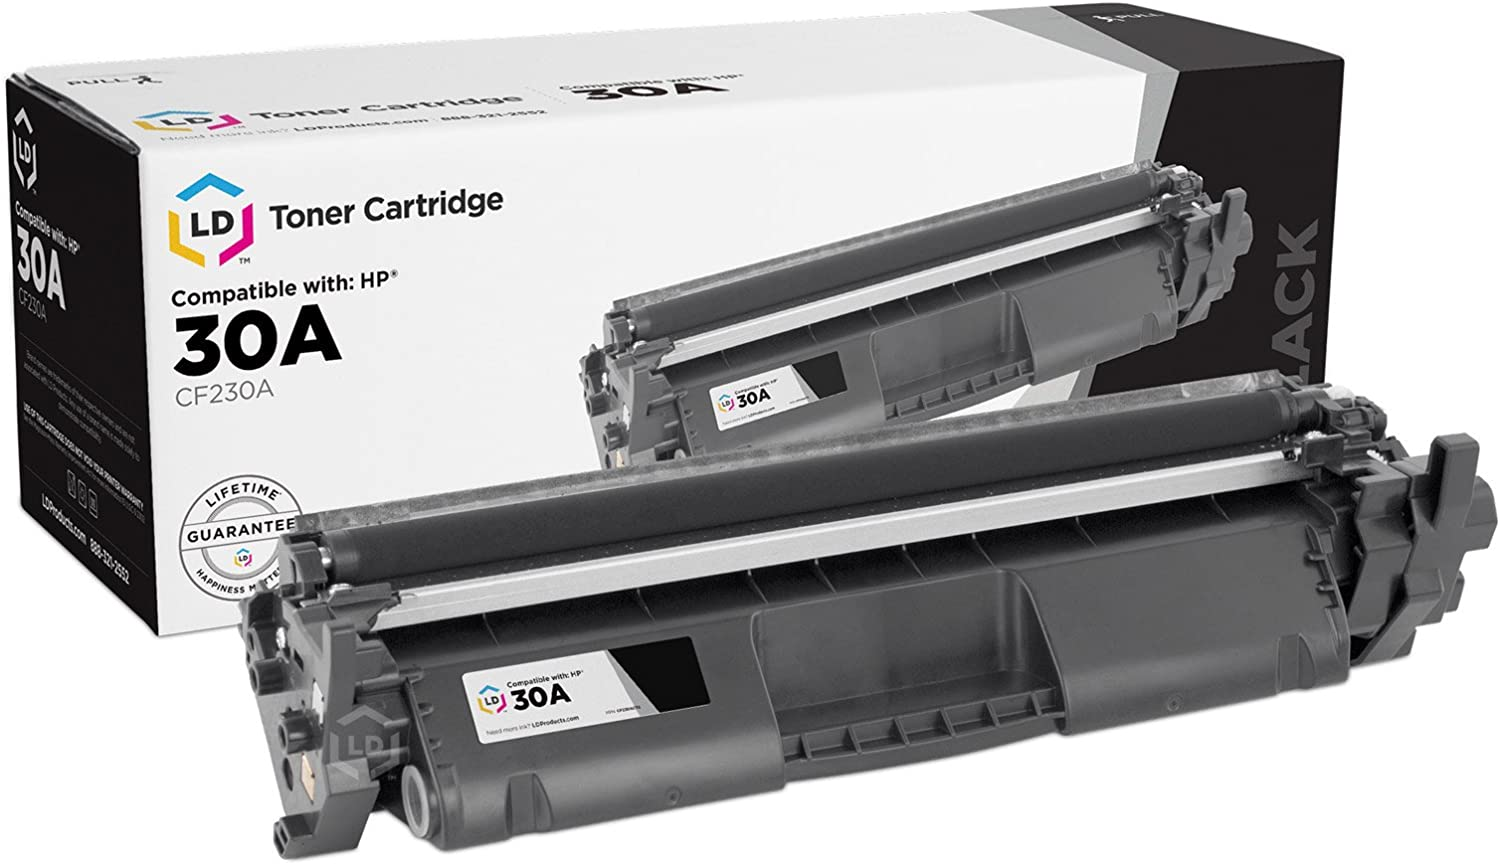 LD Compatible Toner Cartridge Replacement for HP 30A CF230A (Black)